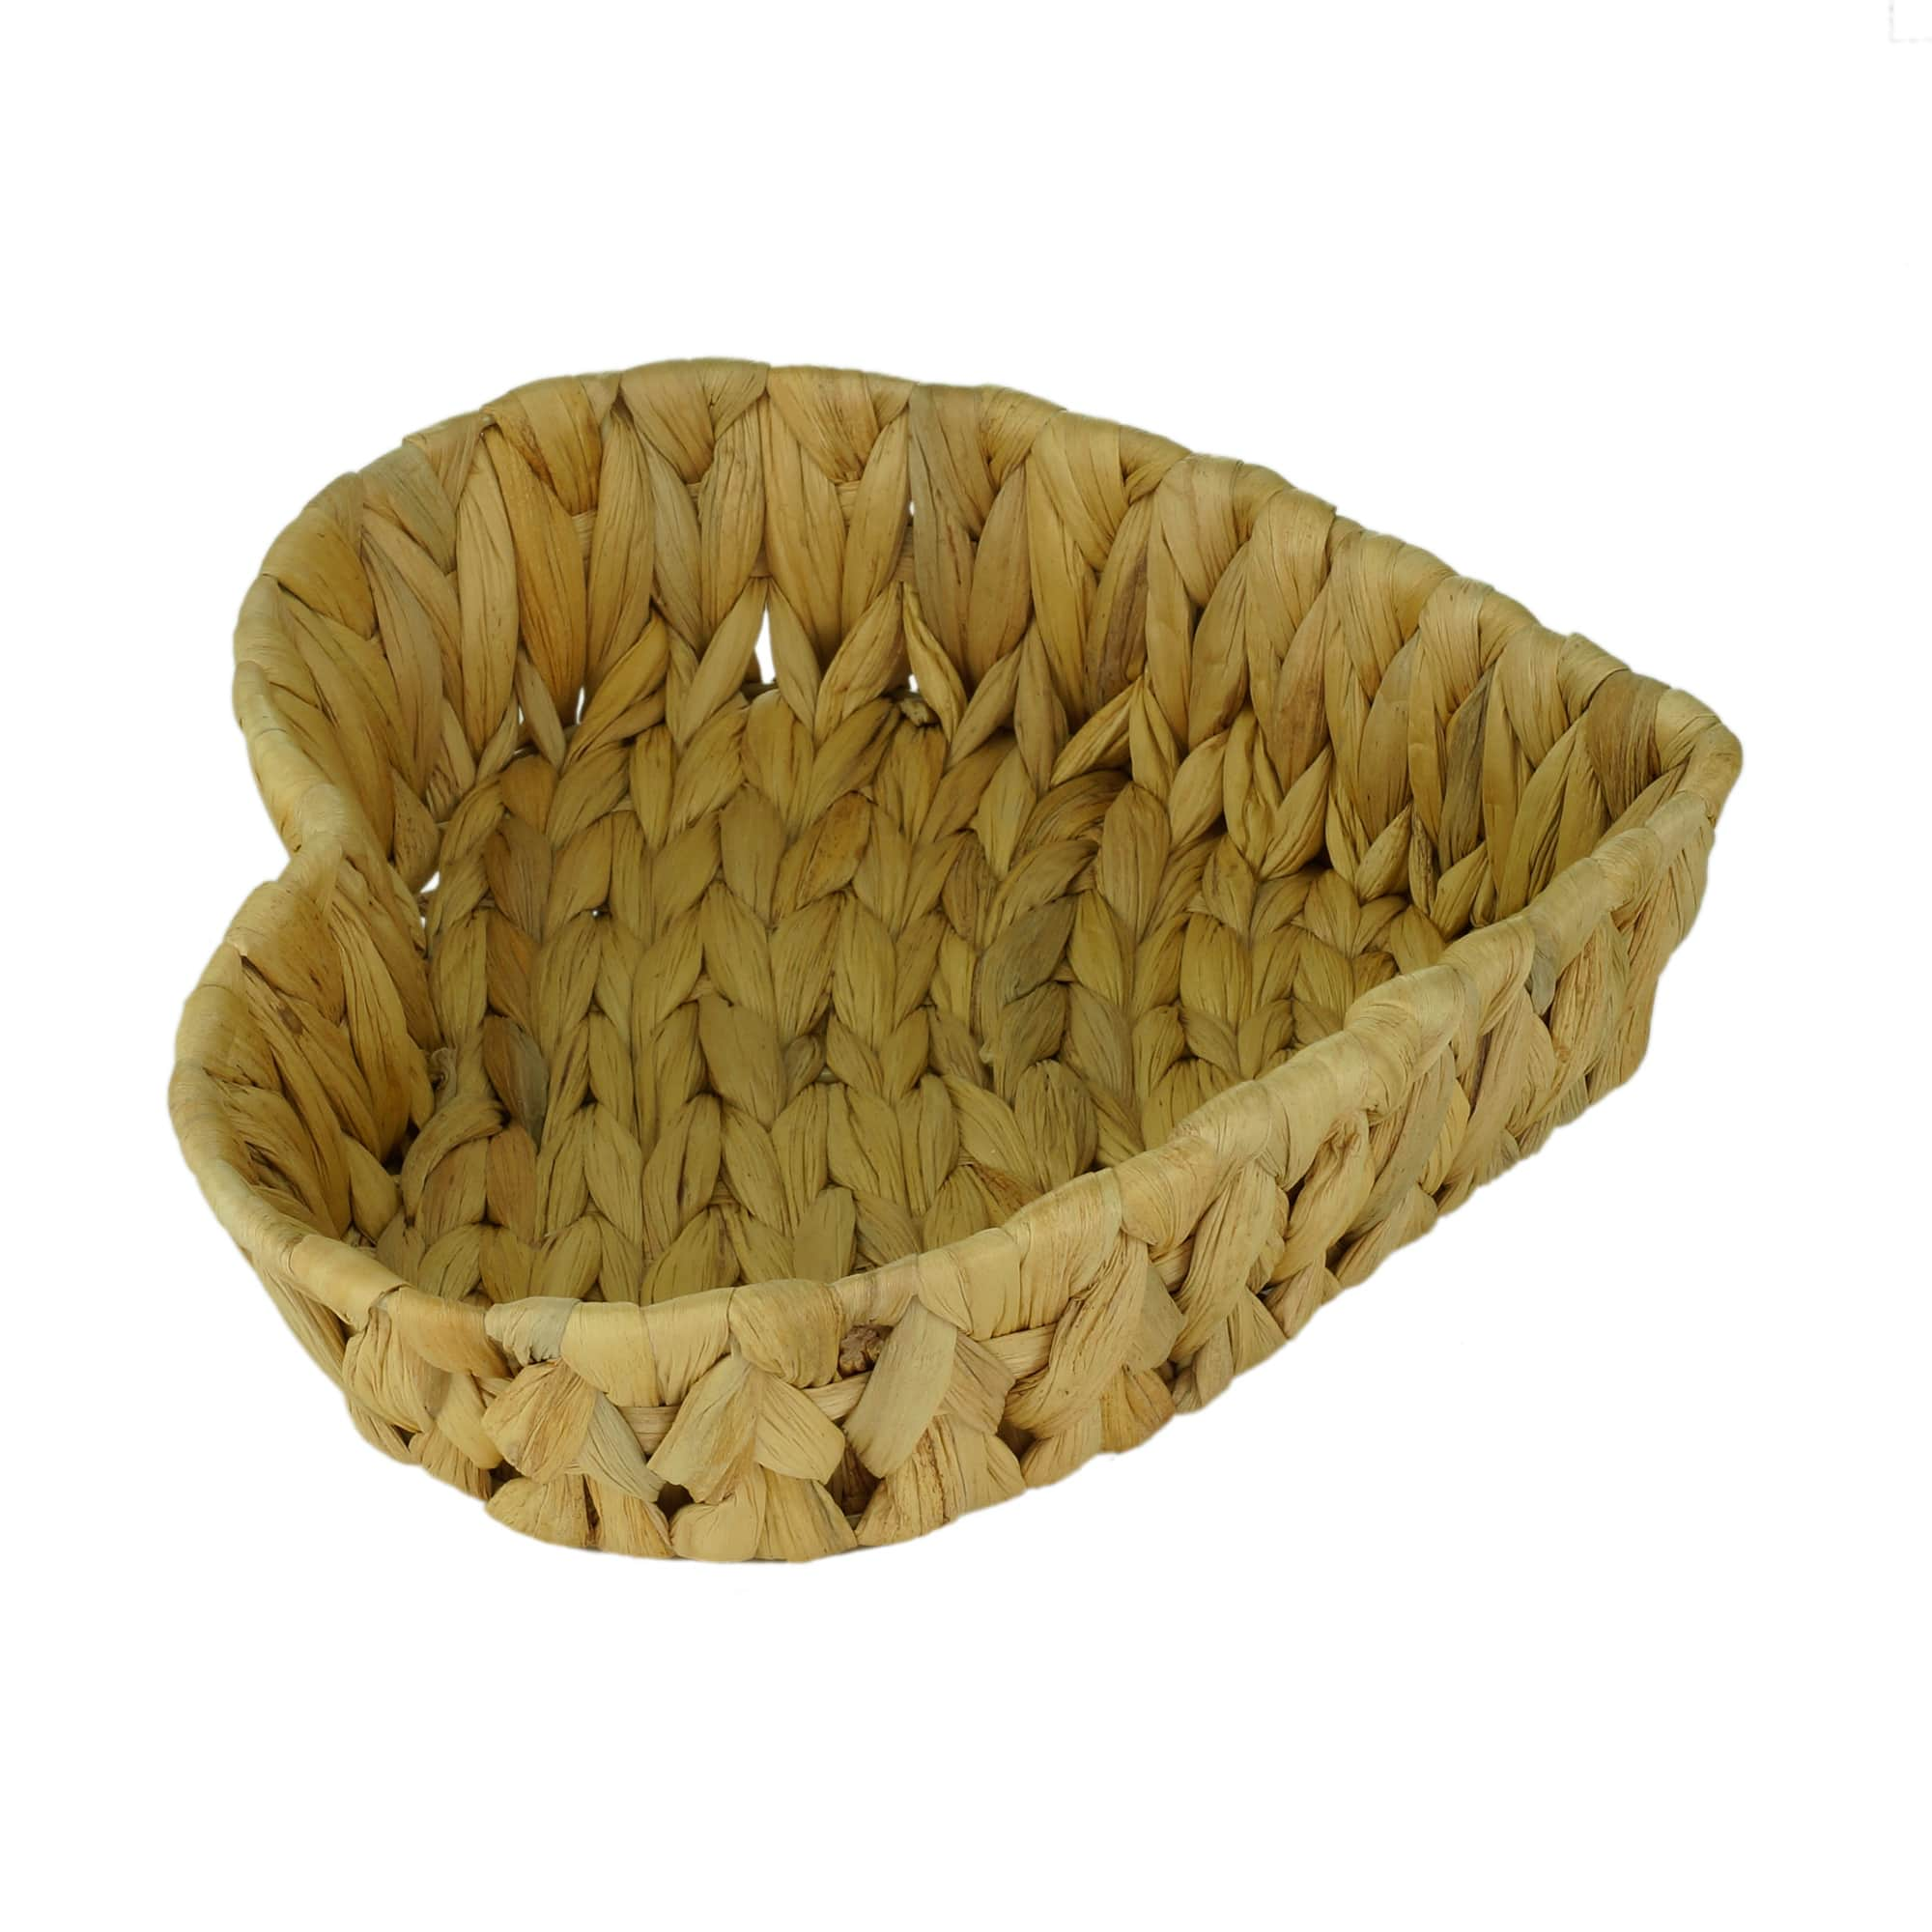 CESTA VIME HEART BASKET NATURAL 24x23x6,5cm